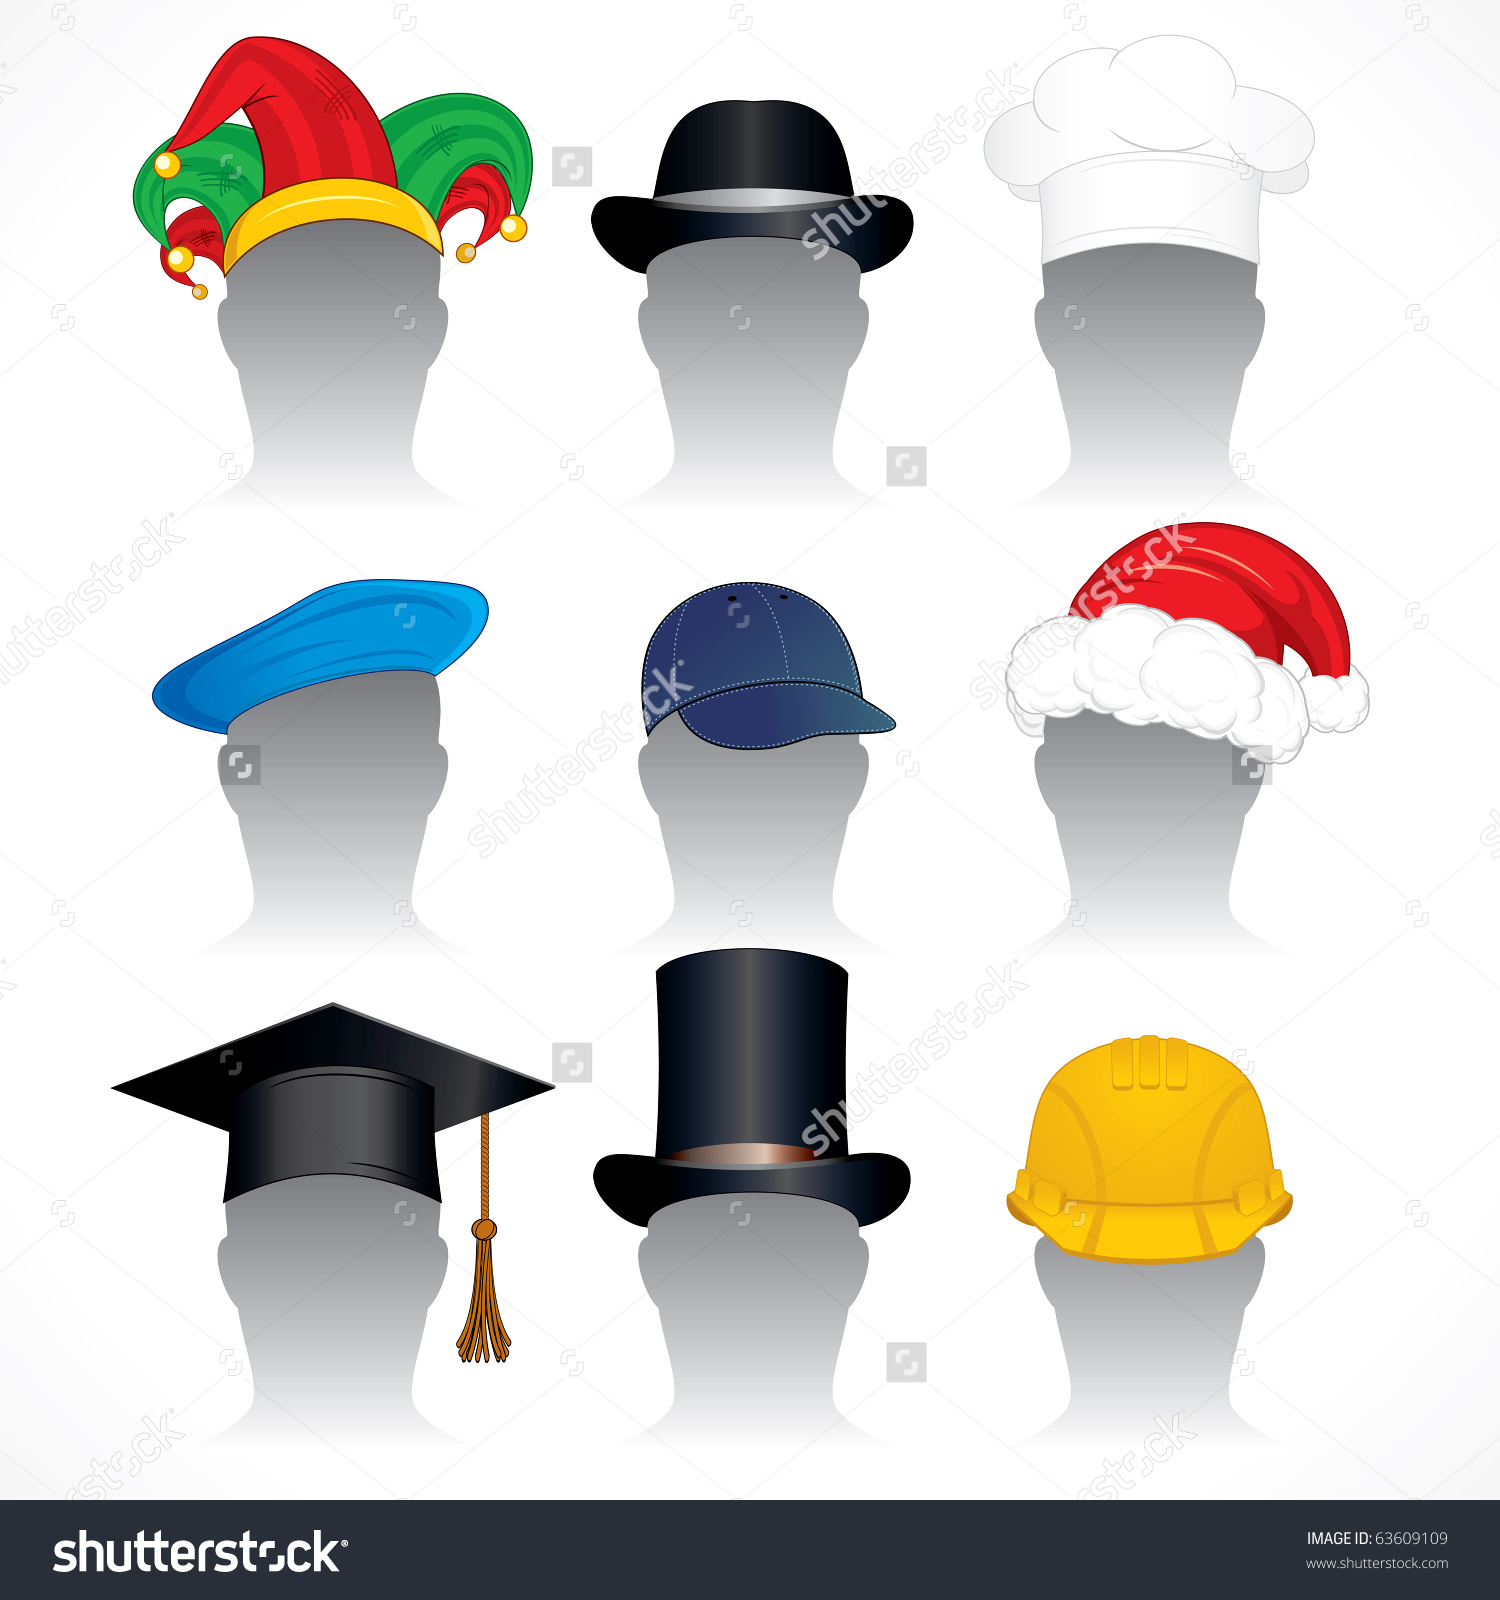 Hats Caps Clip Art Collection Detailed Stock Vector 63609109.